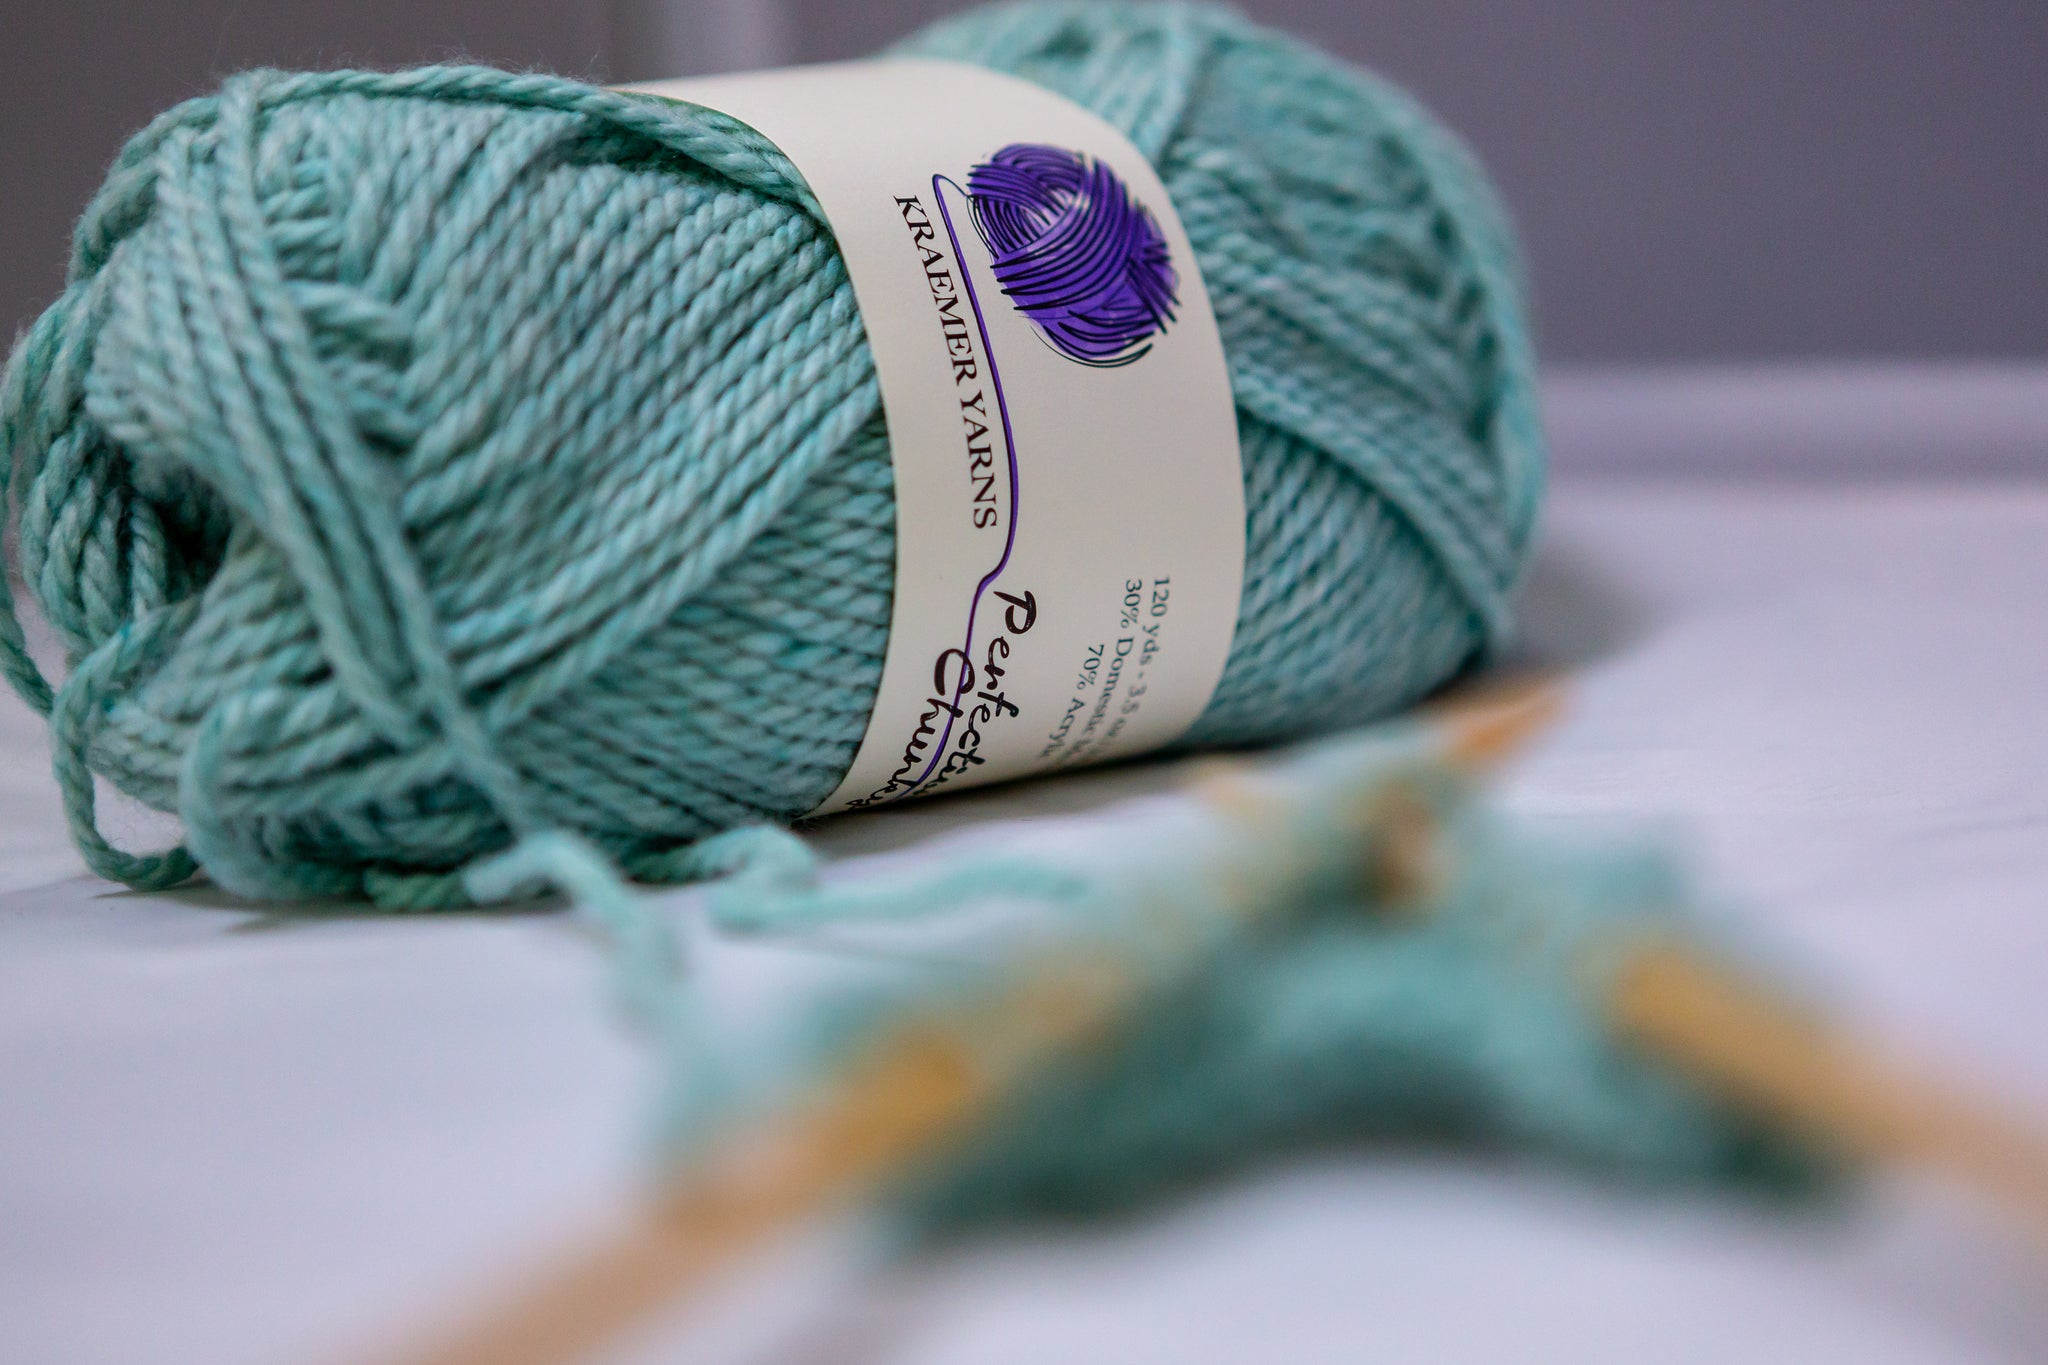 Perfection Yarn is the Perfect Choice for Your Next Project